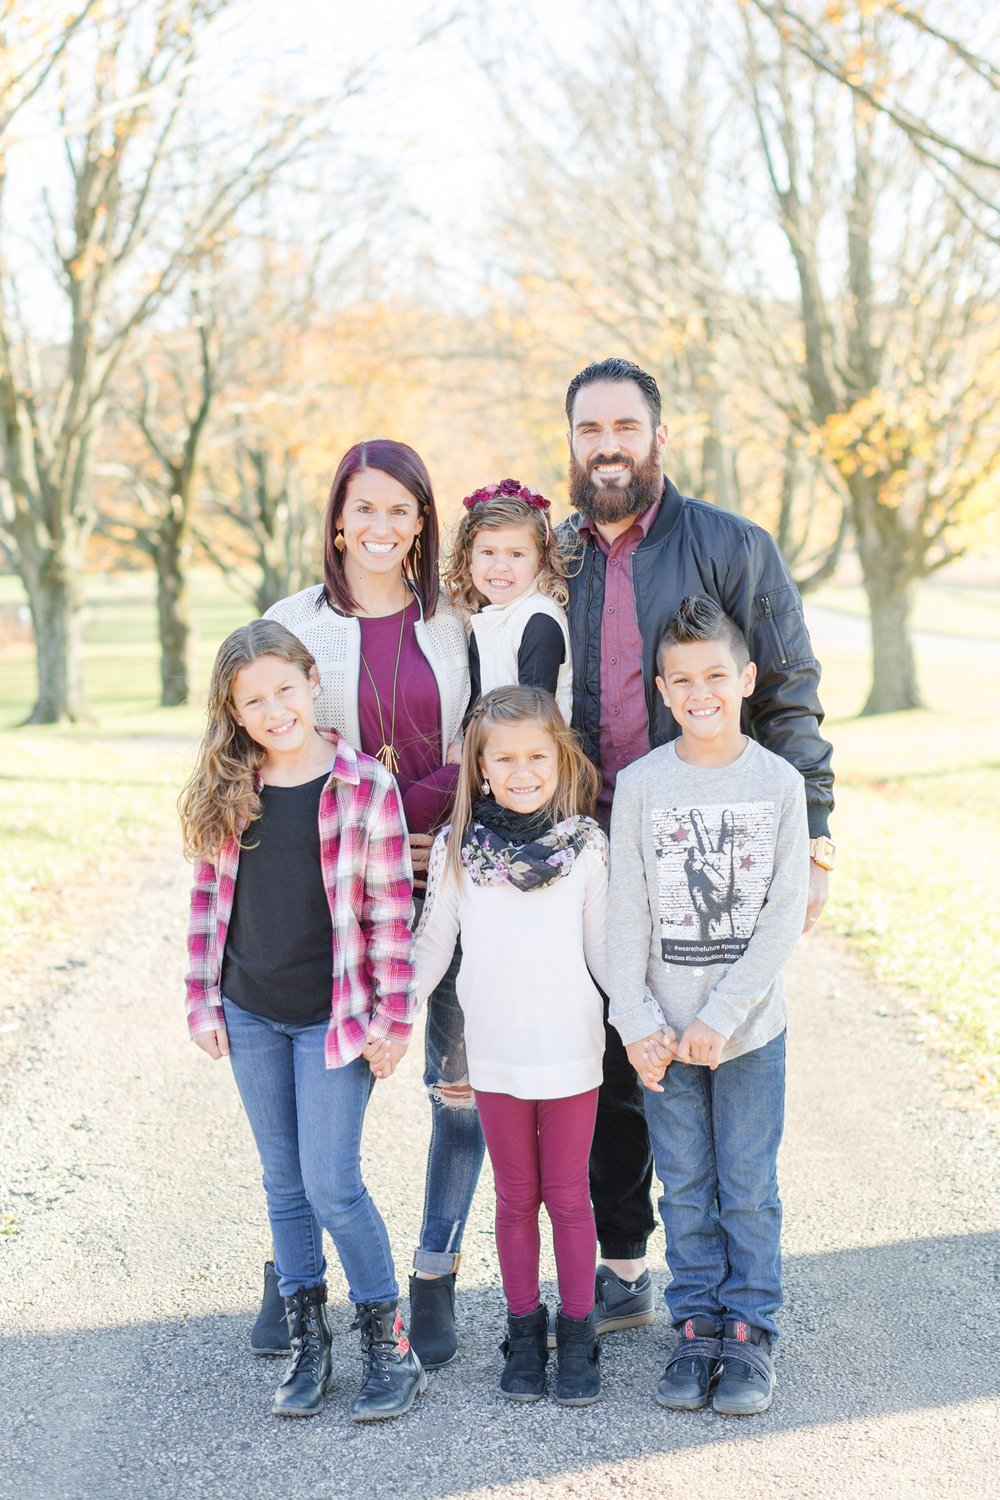 Weddle Family-27_baltimore-maryland-family-photographer-ravens-family-photos-anna-grace-photography-photo.jpg